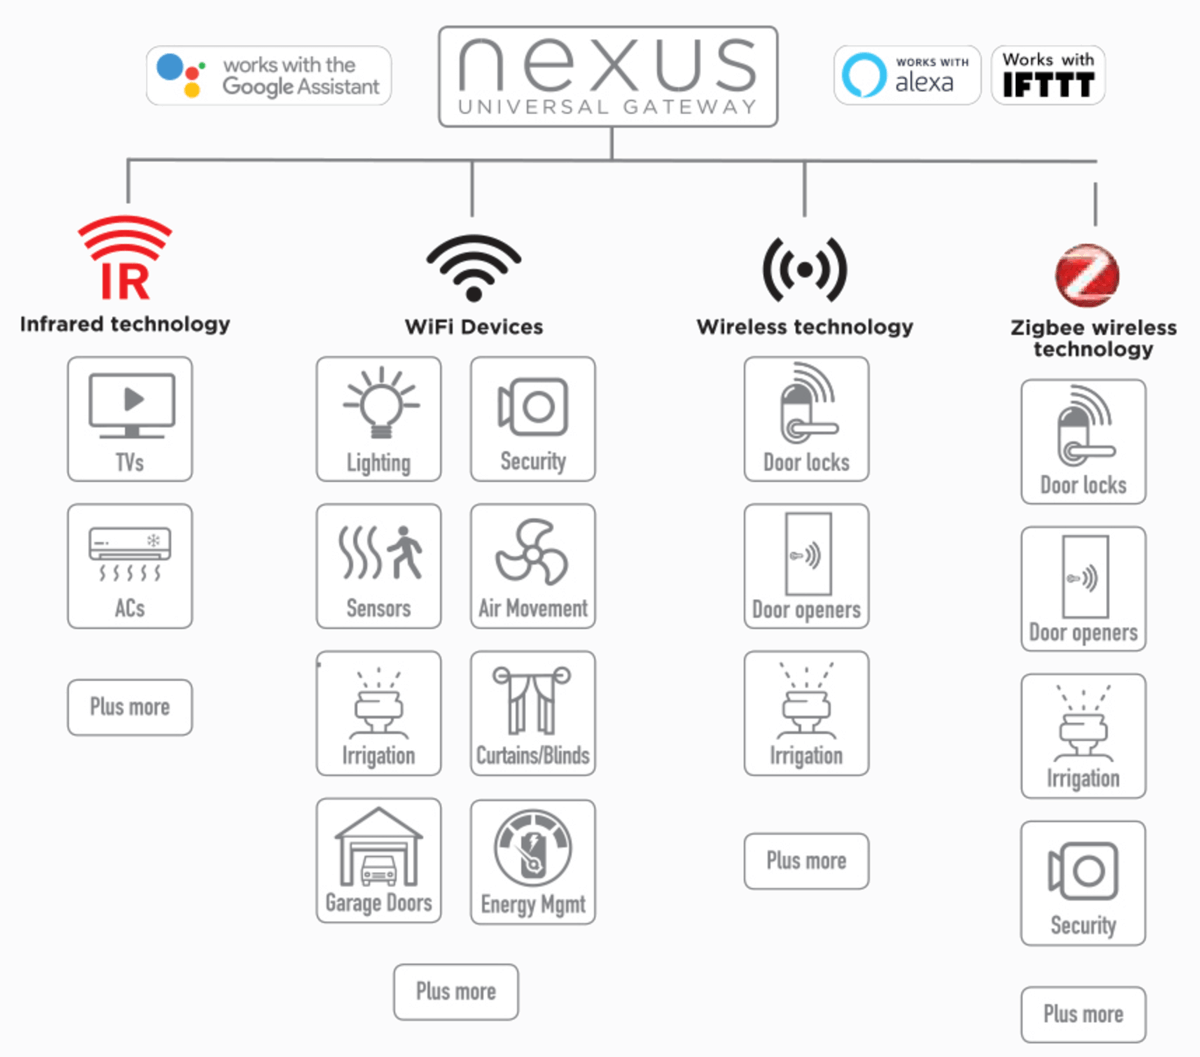 Connect Your Nexus Gateway and Control Your Devices